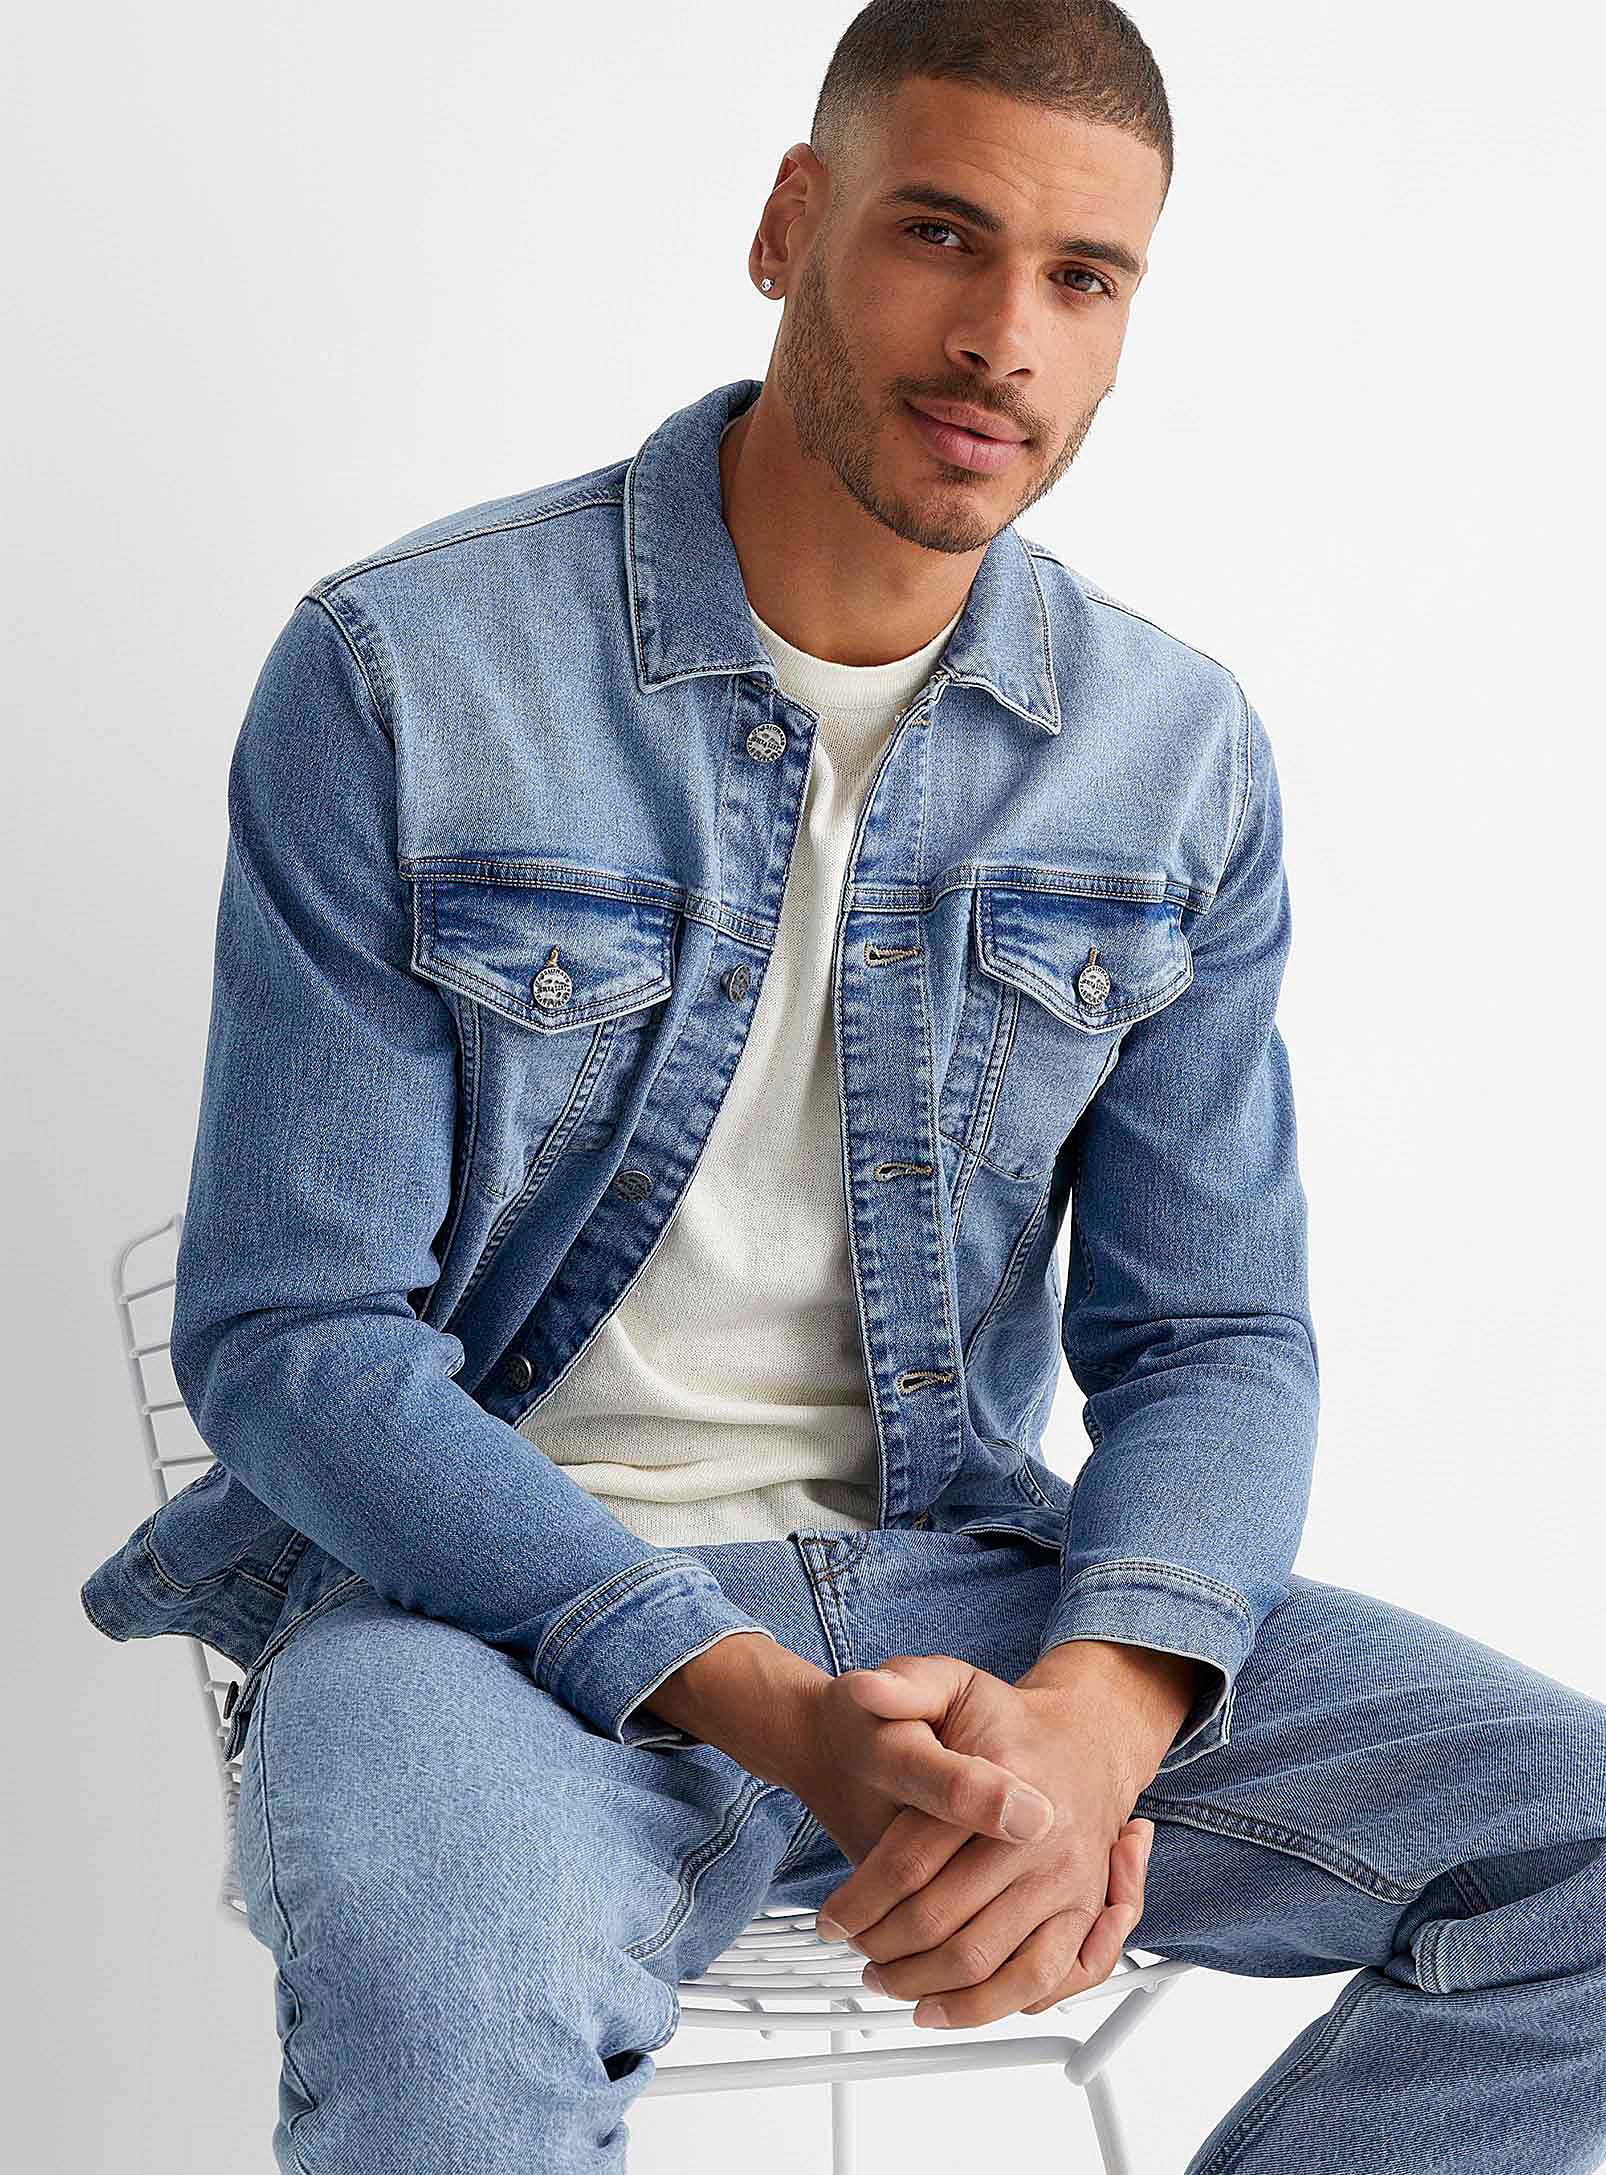 A person wearing a denim jacket over a plain shirt and jeans